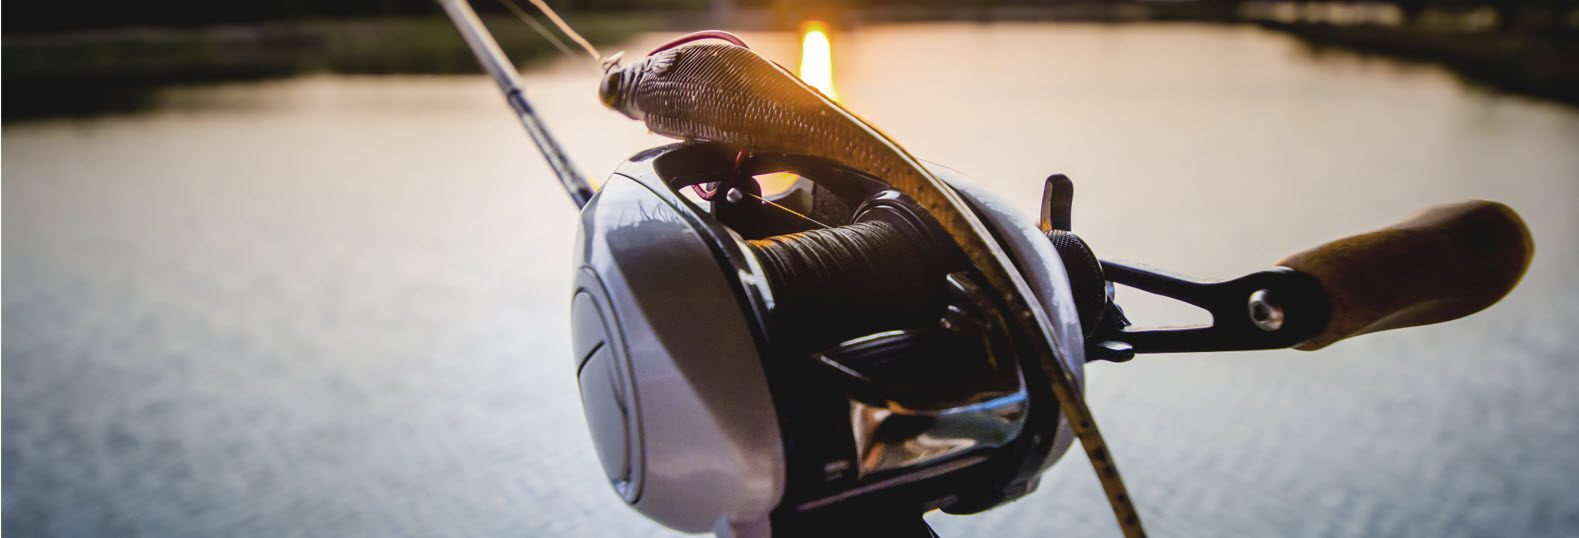 high end baitcasting reels for bass - baitcaster with lure